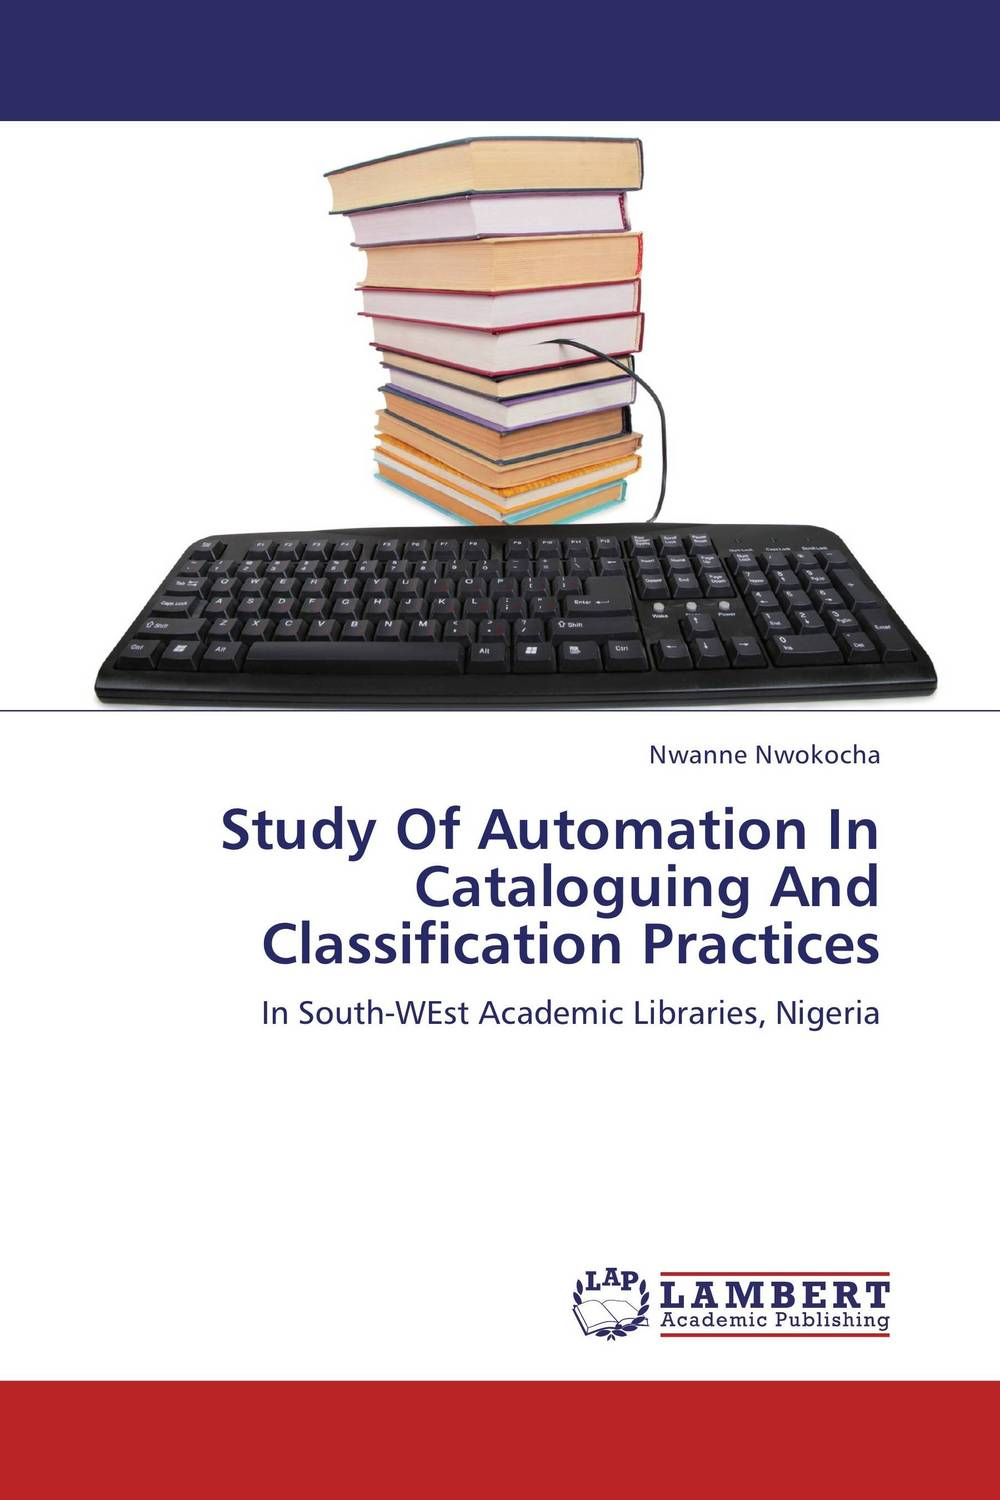 купить Study Of Automation In Cataloguing And Classification Practices недорого